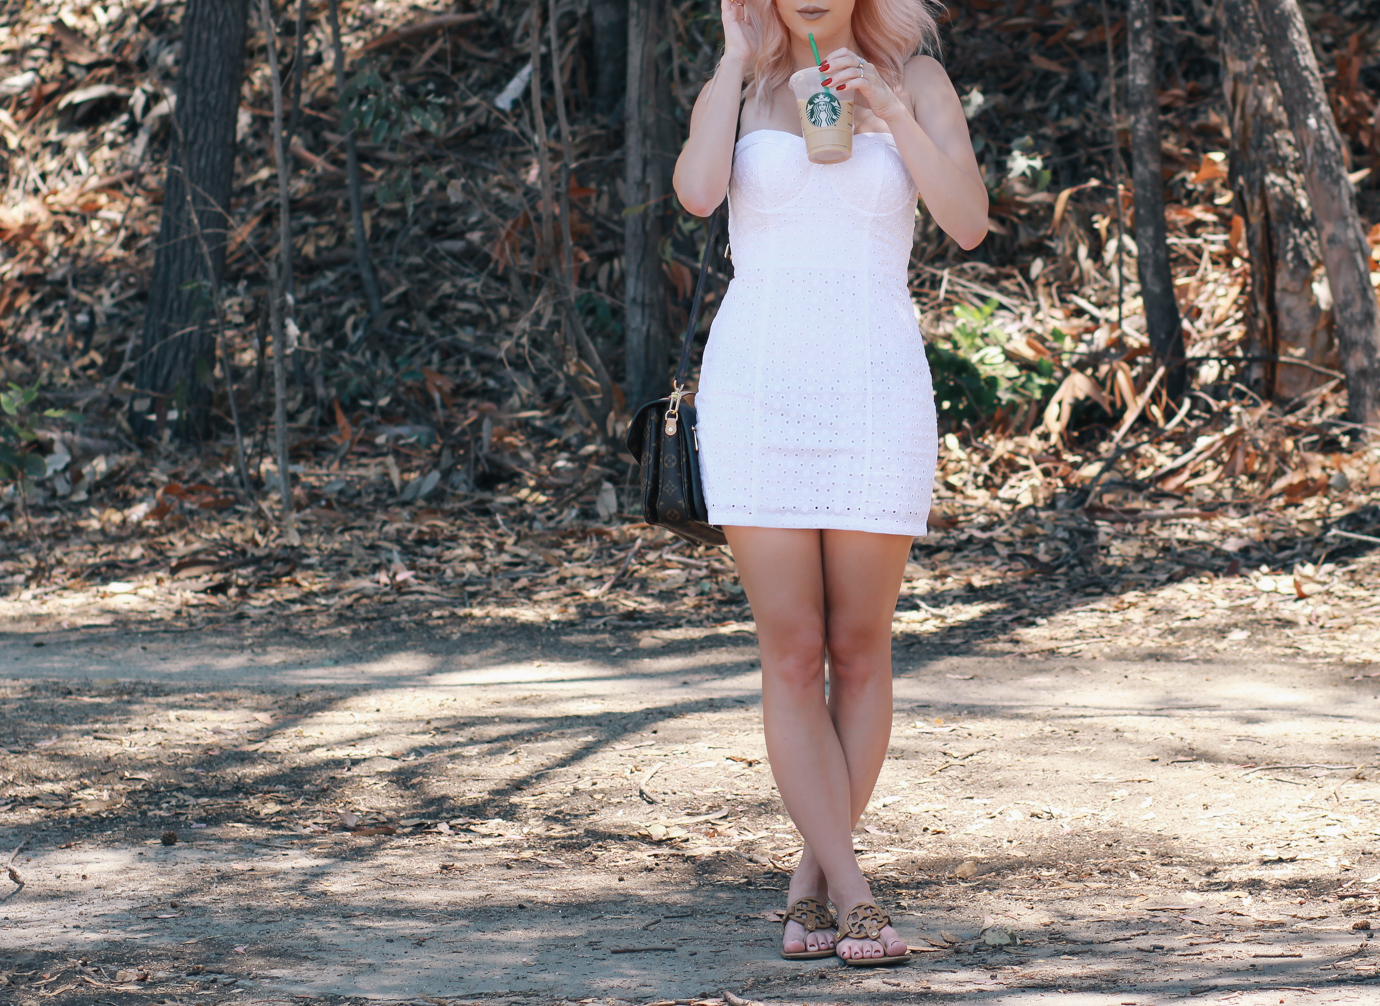 Blondie in the City   Pastel Pink Hair   Life Is Too Short To Have Boring Hair   White Summer Dress